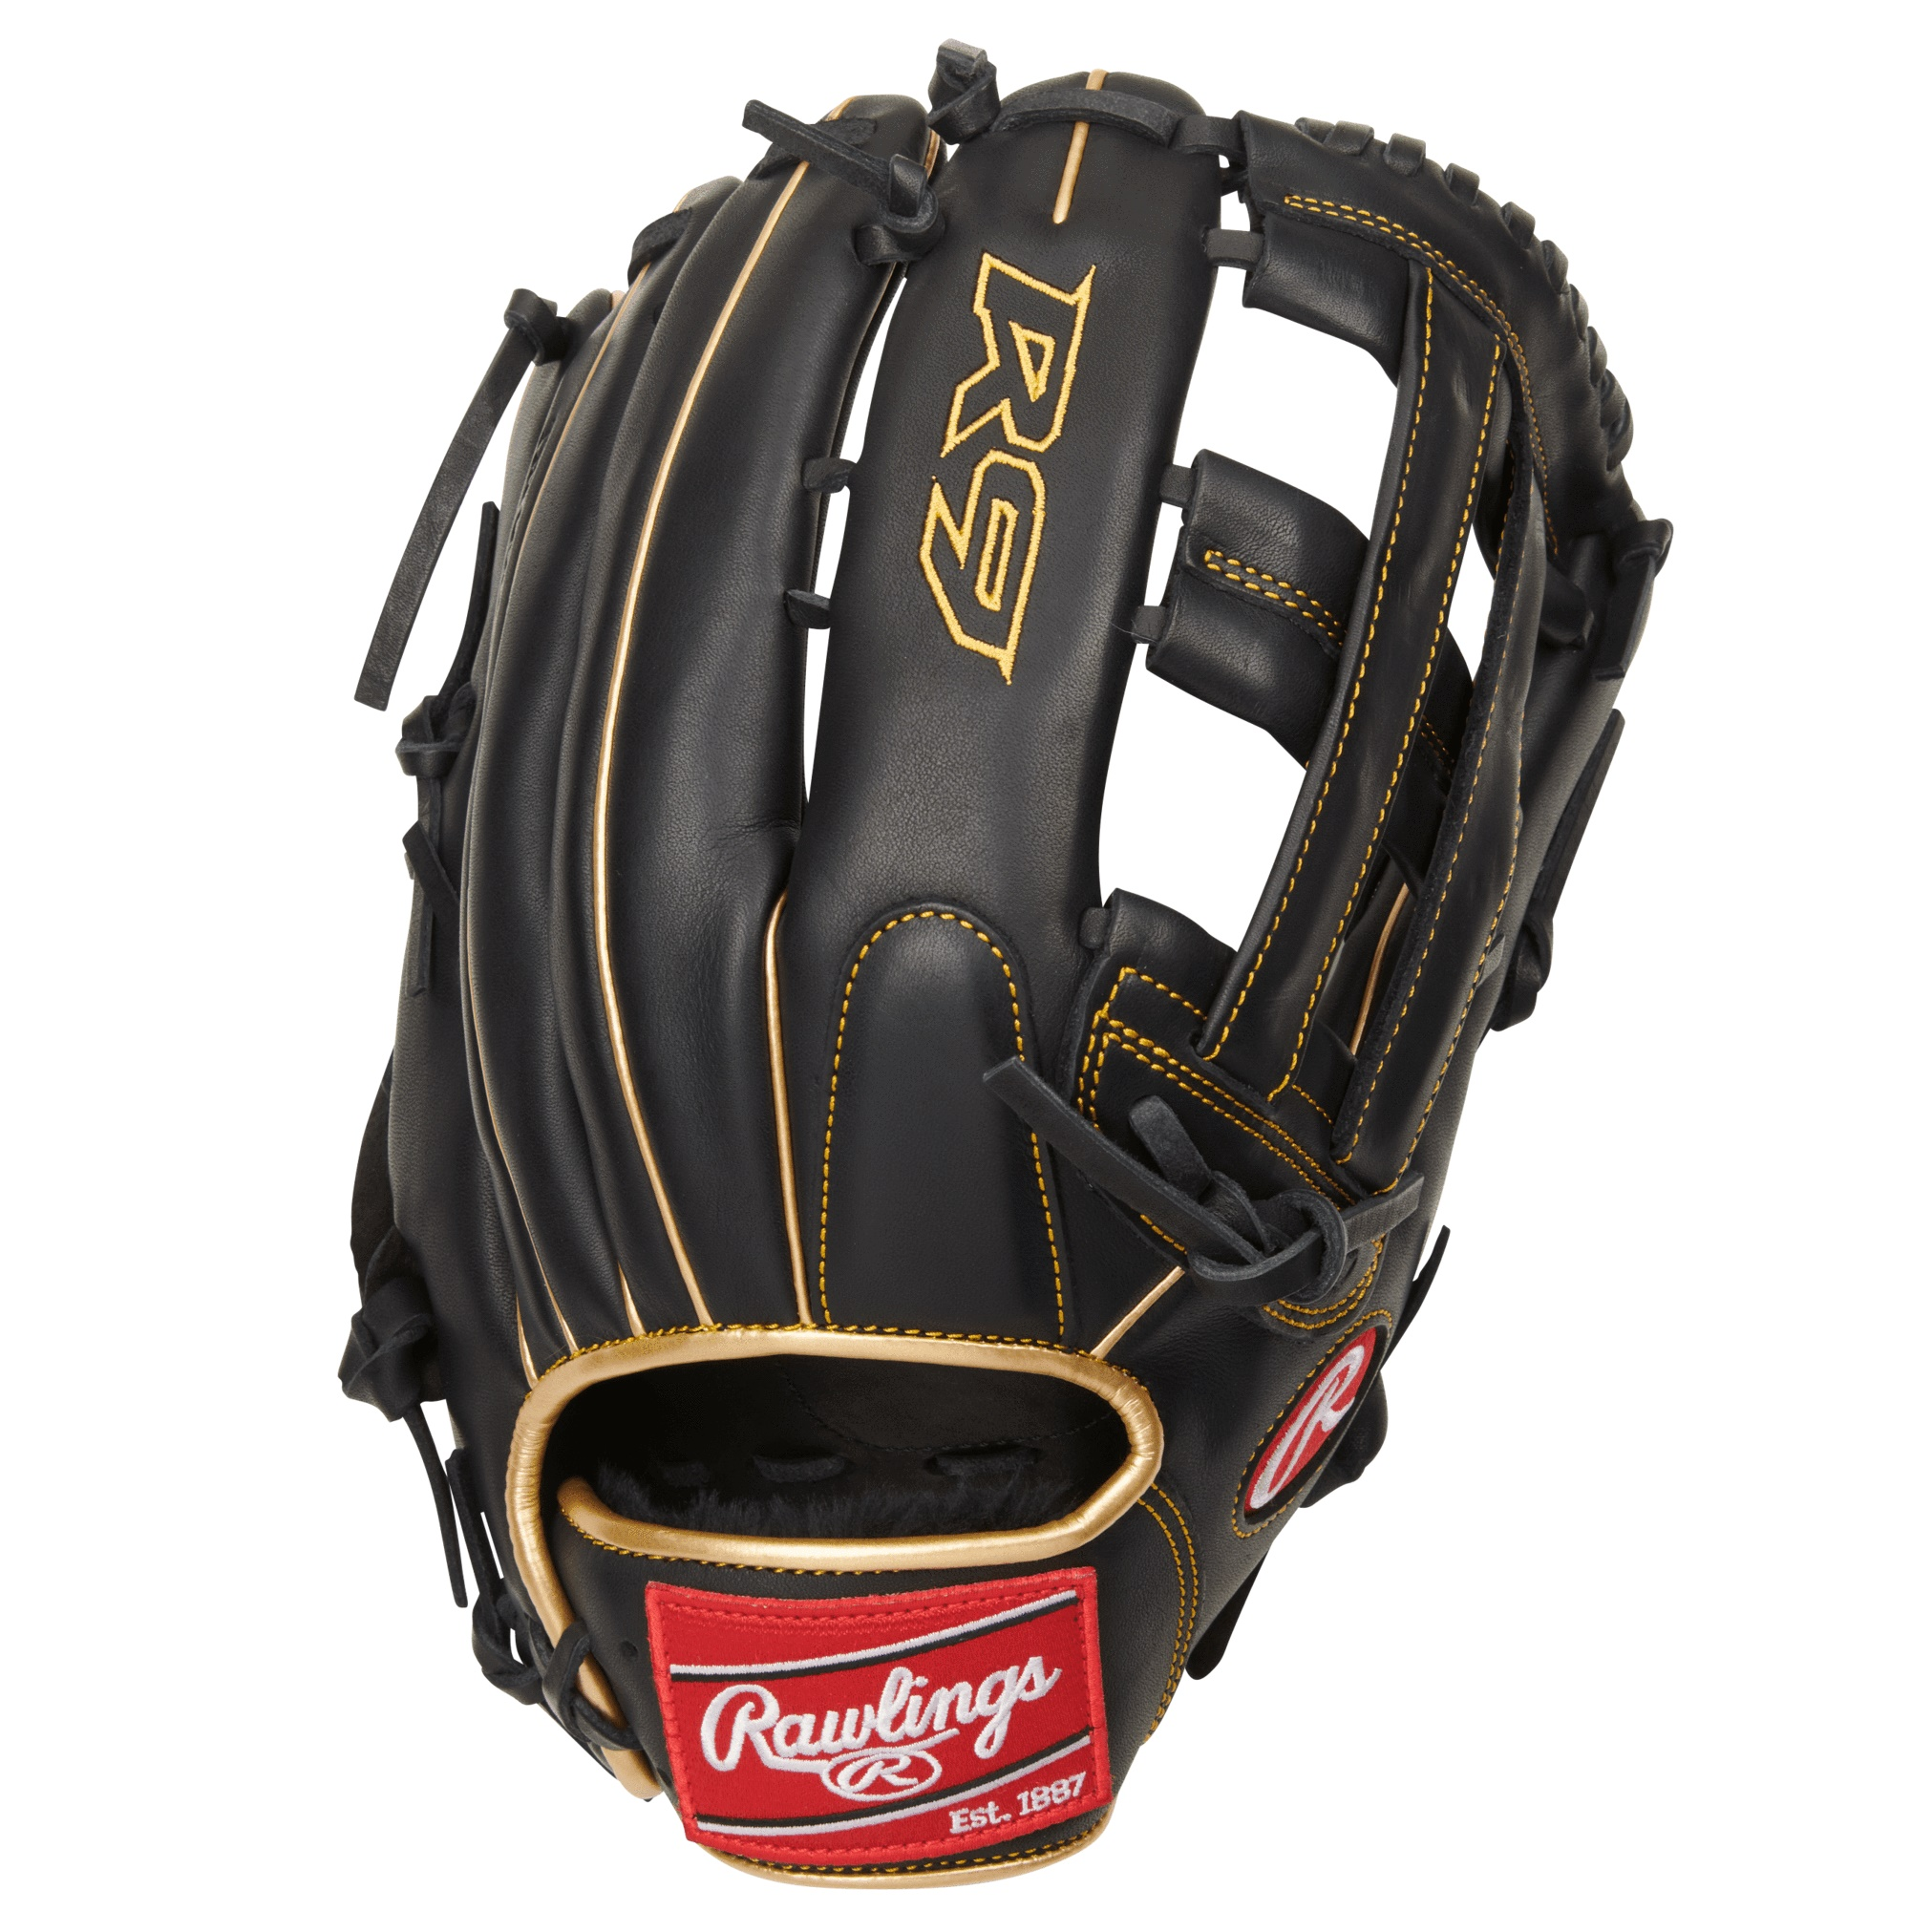 rawlings-r9-series-baseball-glove-pro-h-web-12-75-inch-right-hand-throw R93029-6BG-RightHandThrow   Take the field with confidence when you order the 2021 12.75-inch